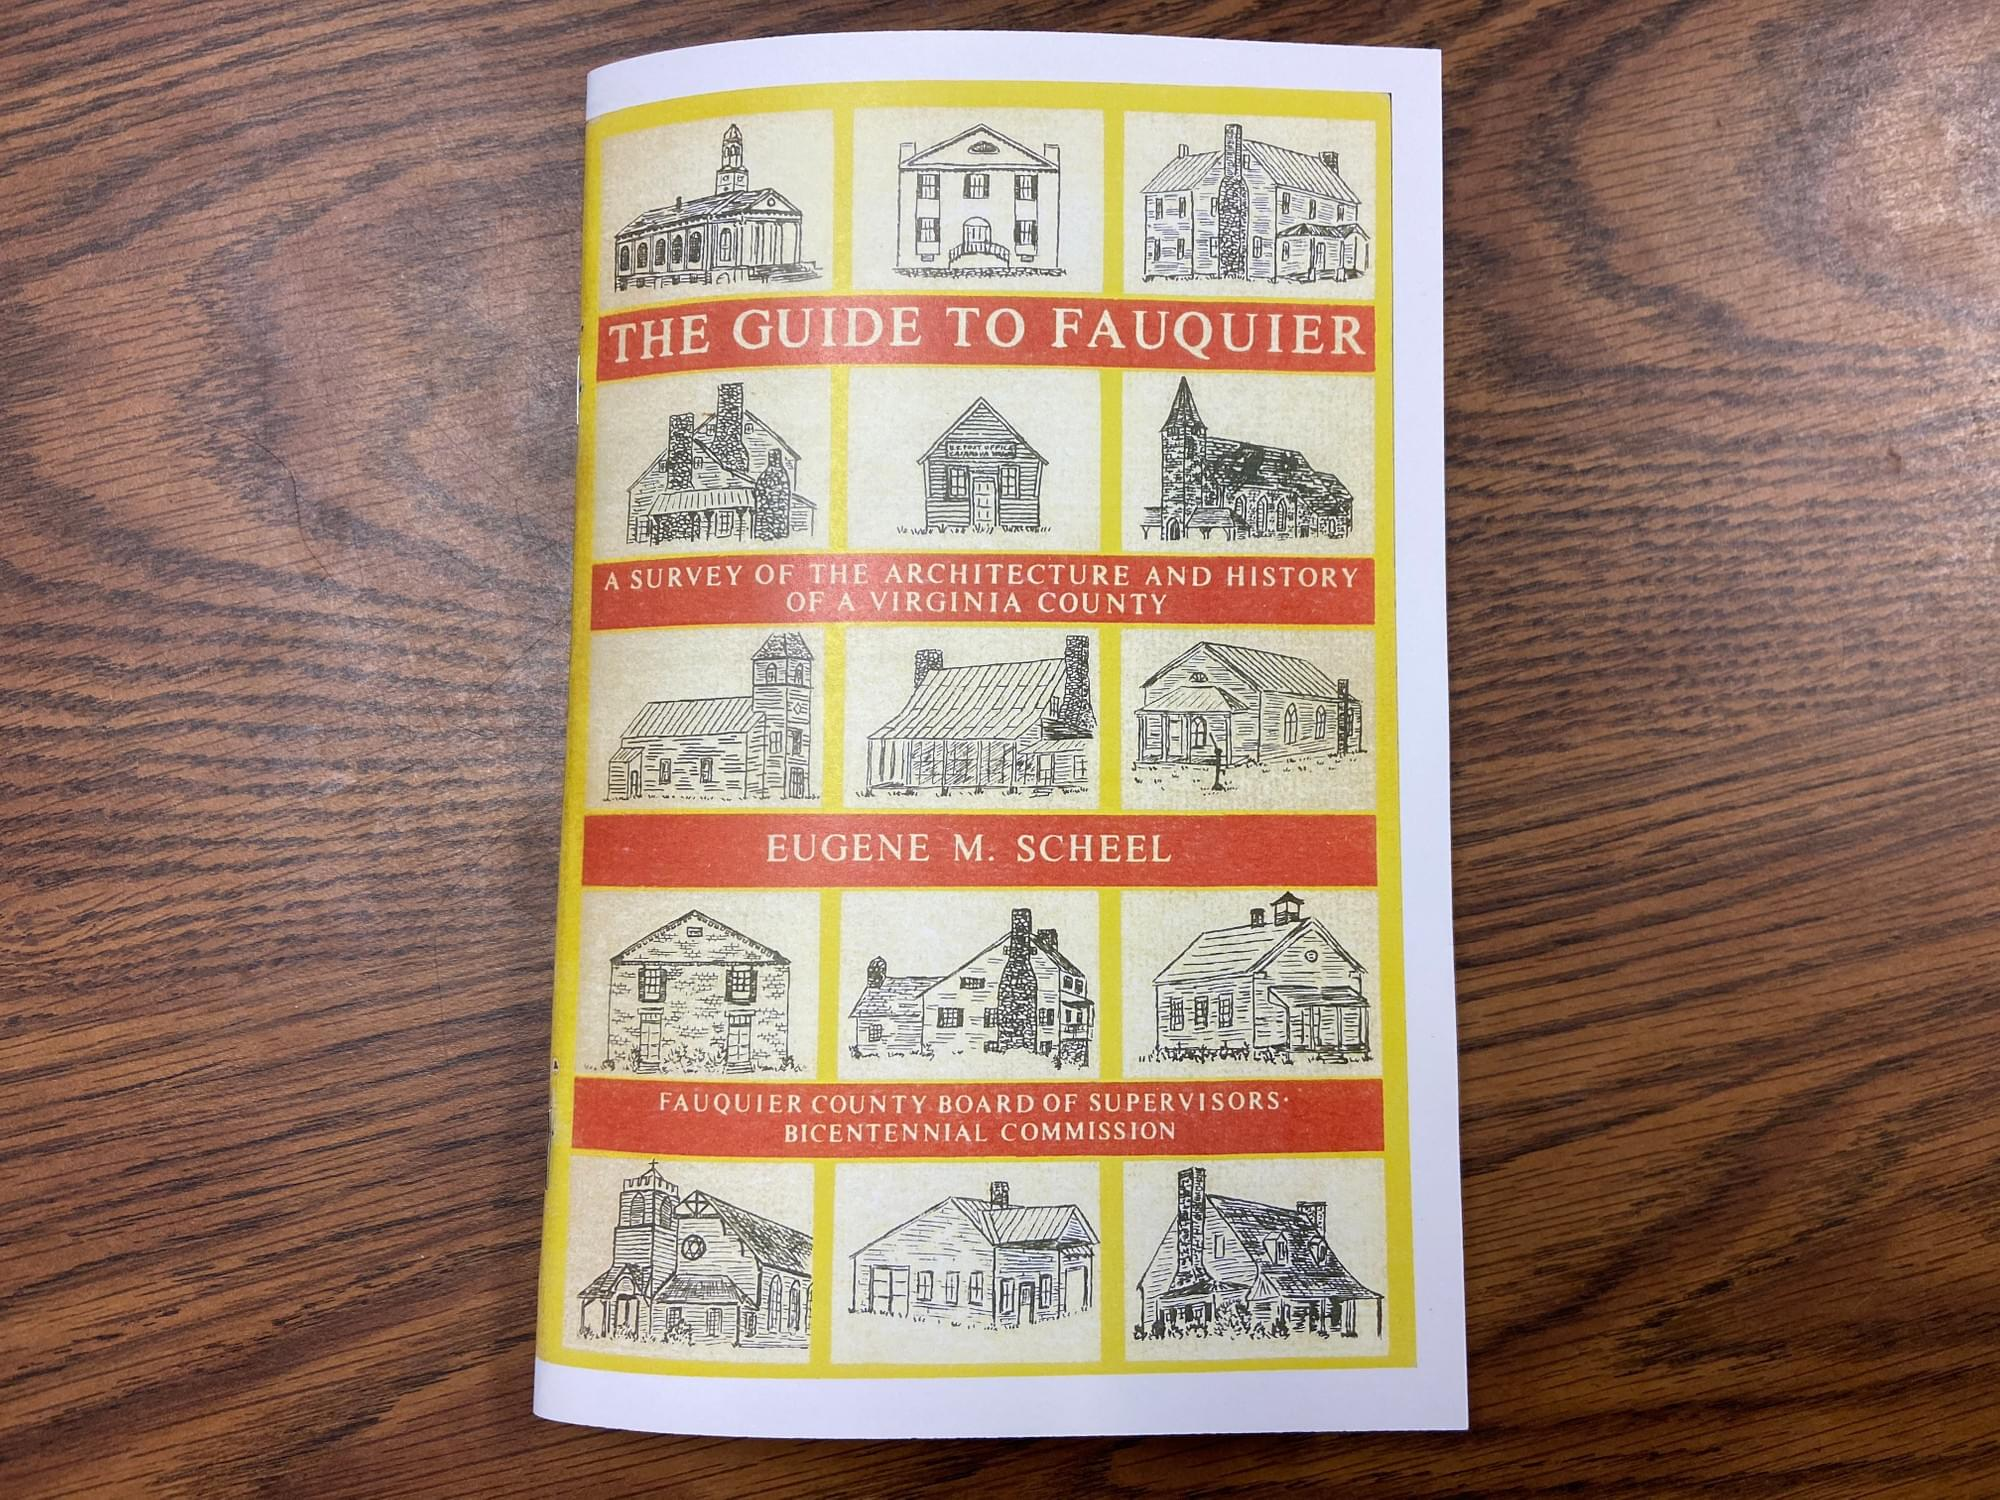 The Guide to Fauquier By Eugene Scheel